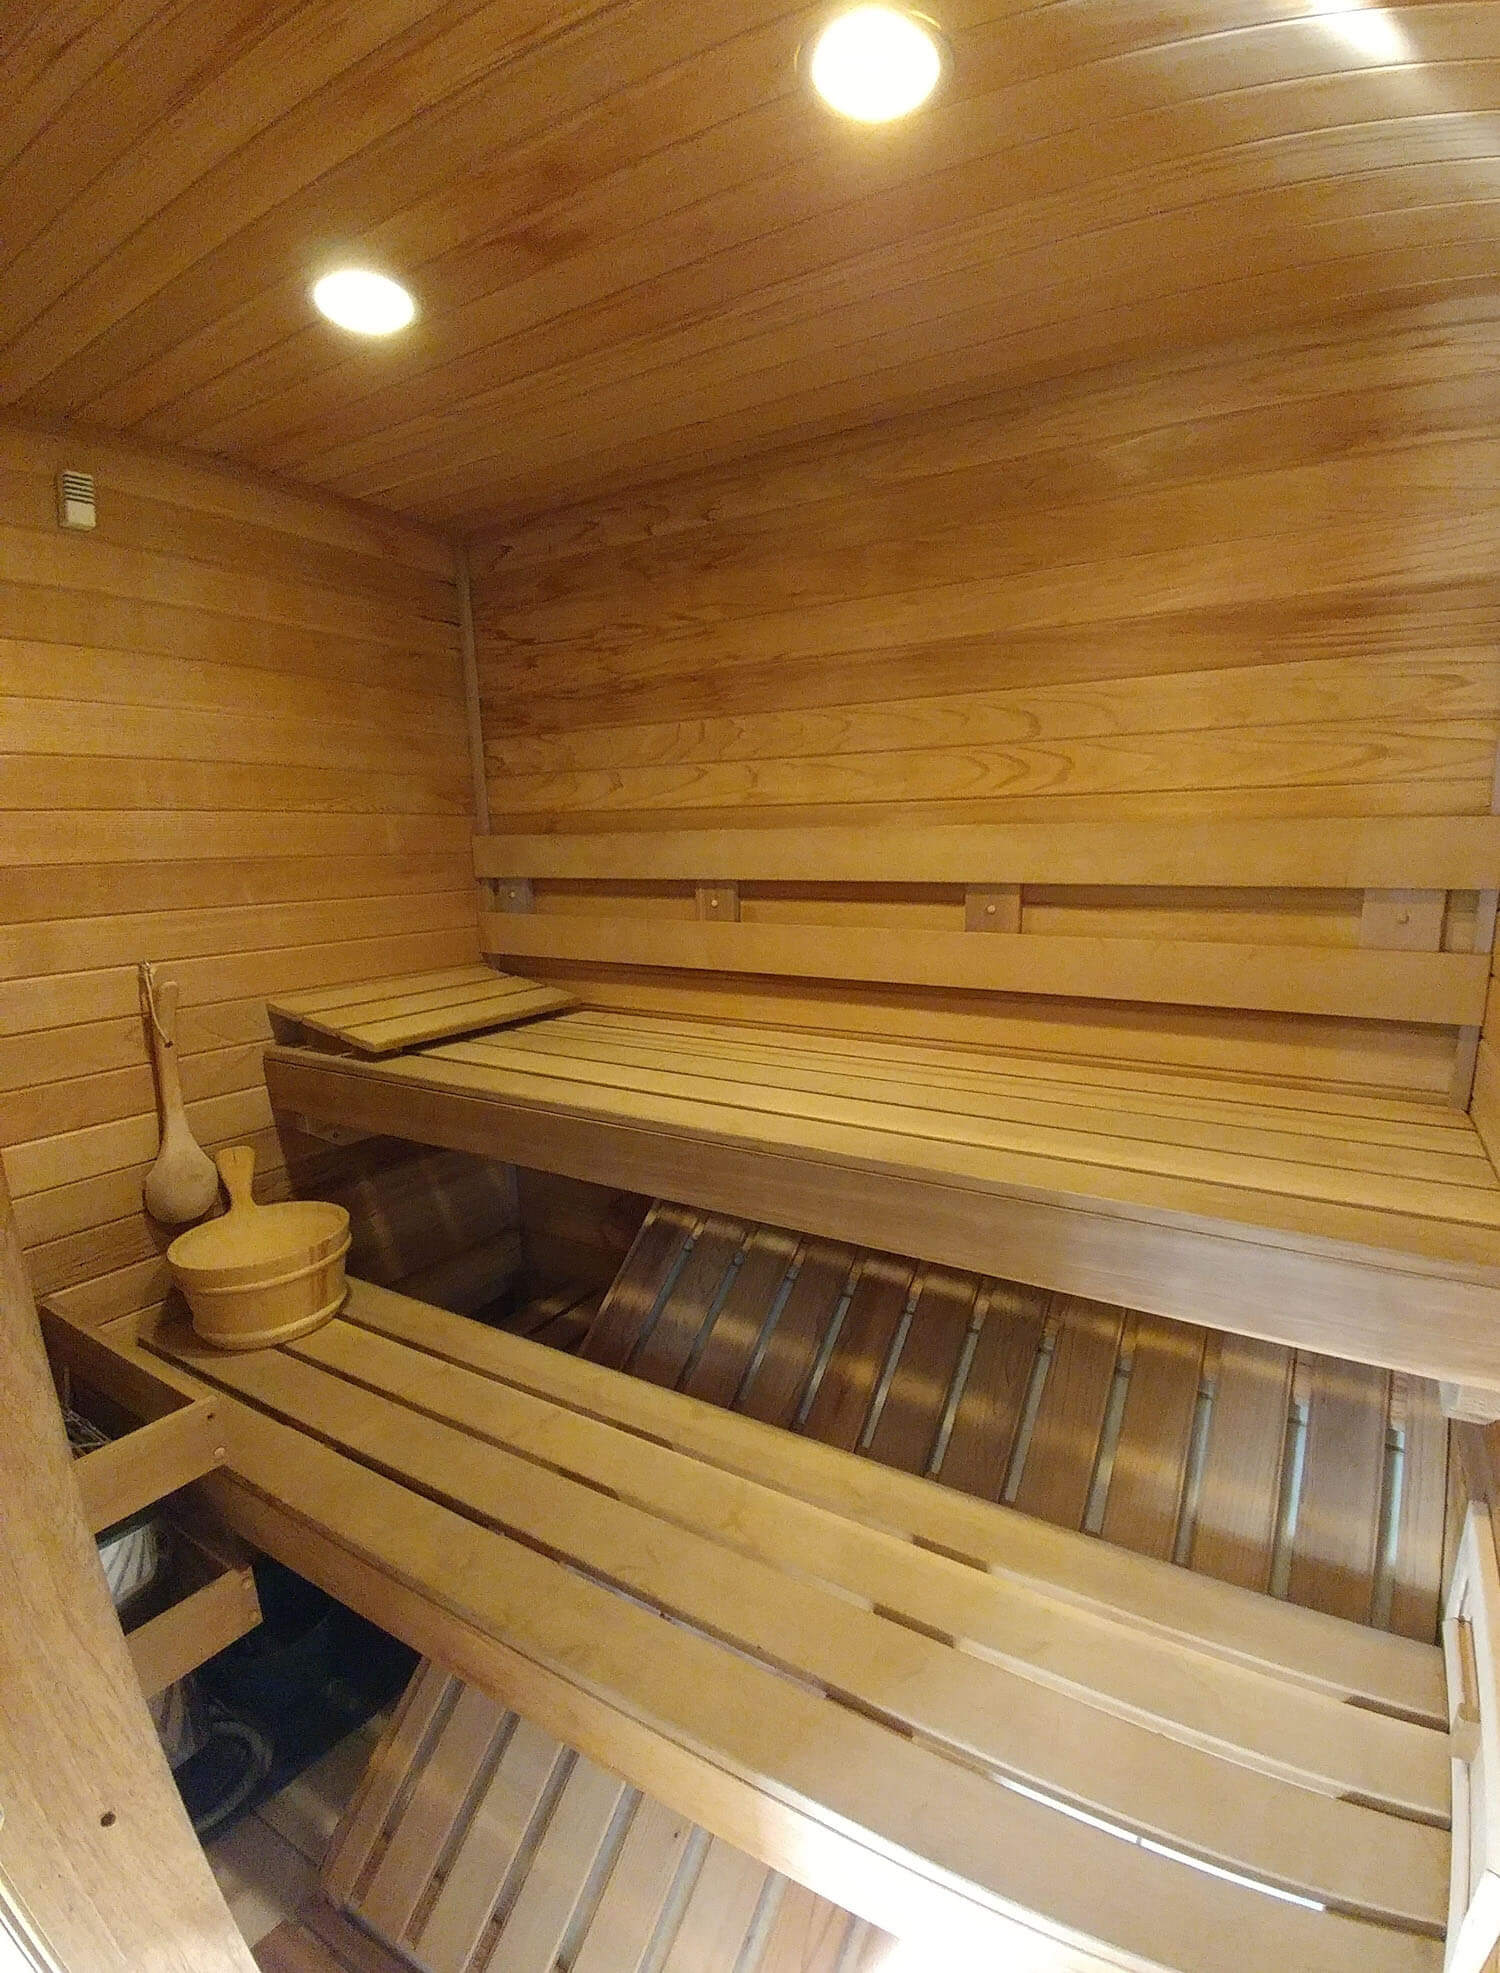 A large sauna with wooden walls and benches.